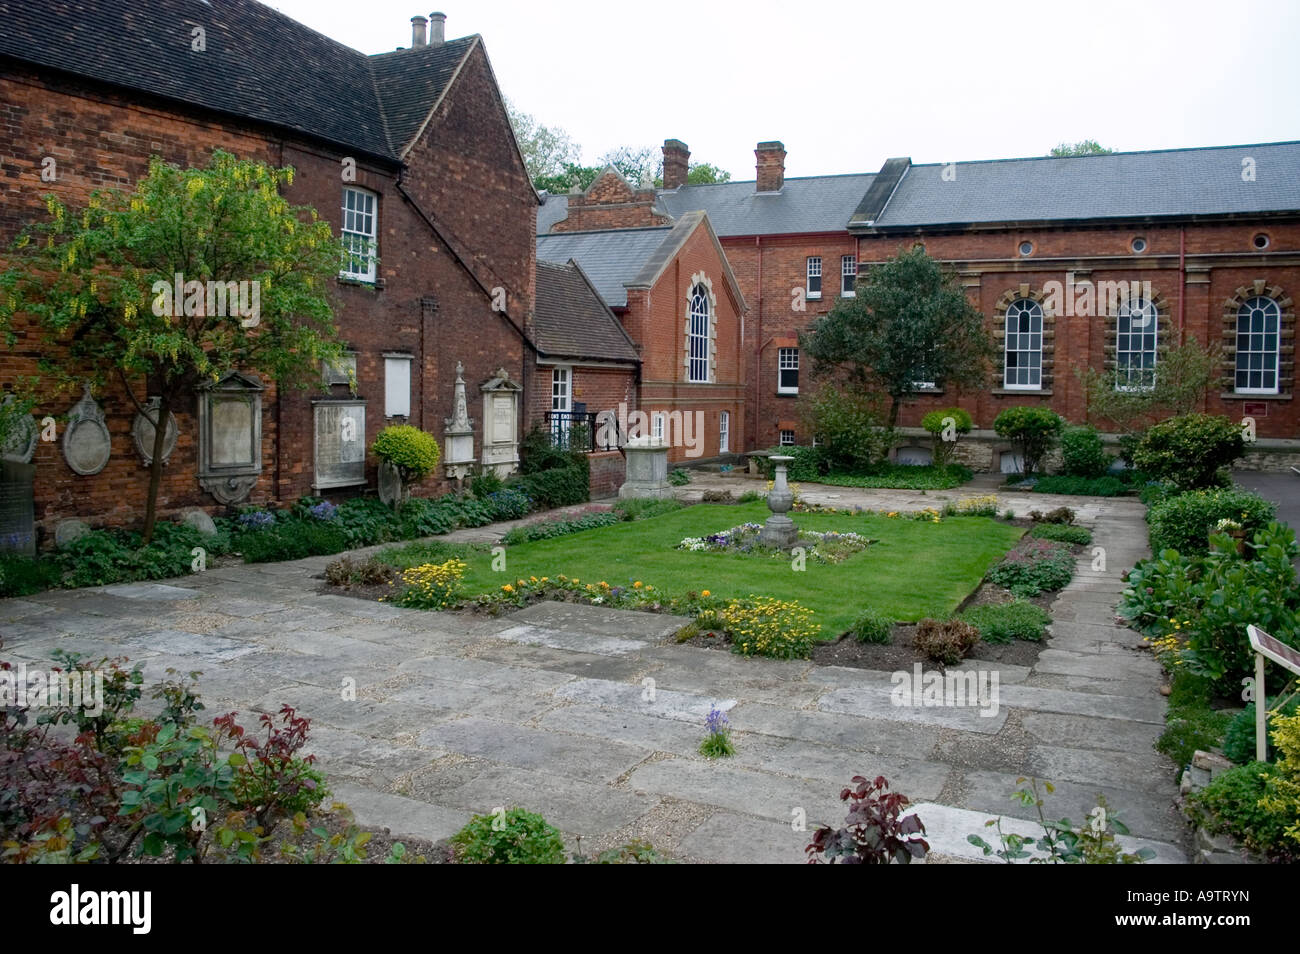 john bunyan meeting hall garden bedford author of pilgrim progress - Stock Image